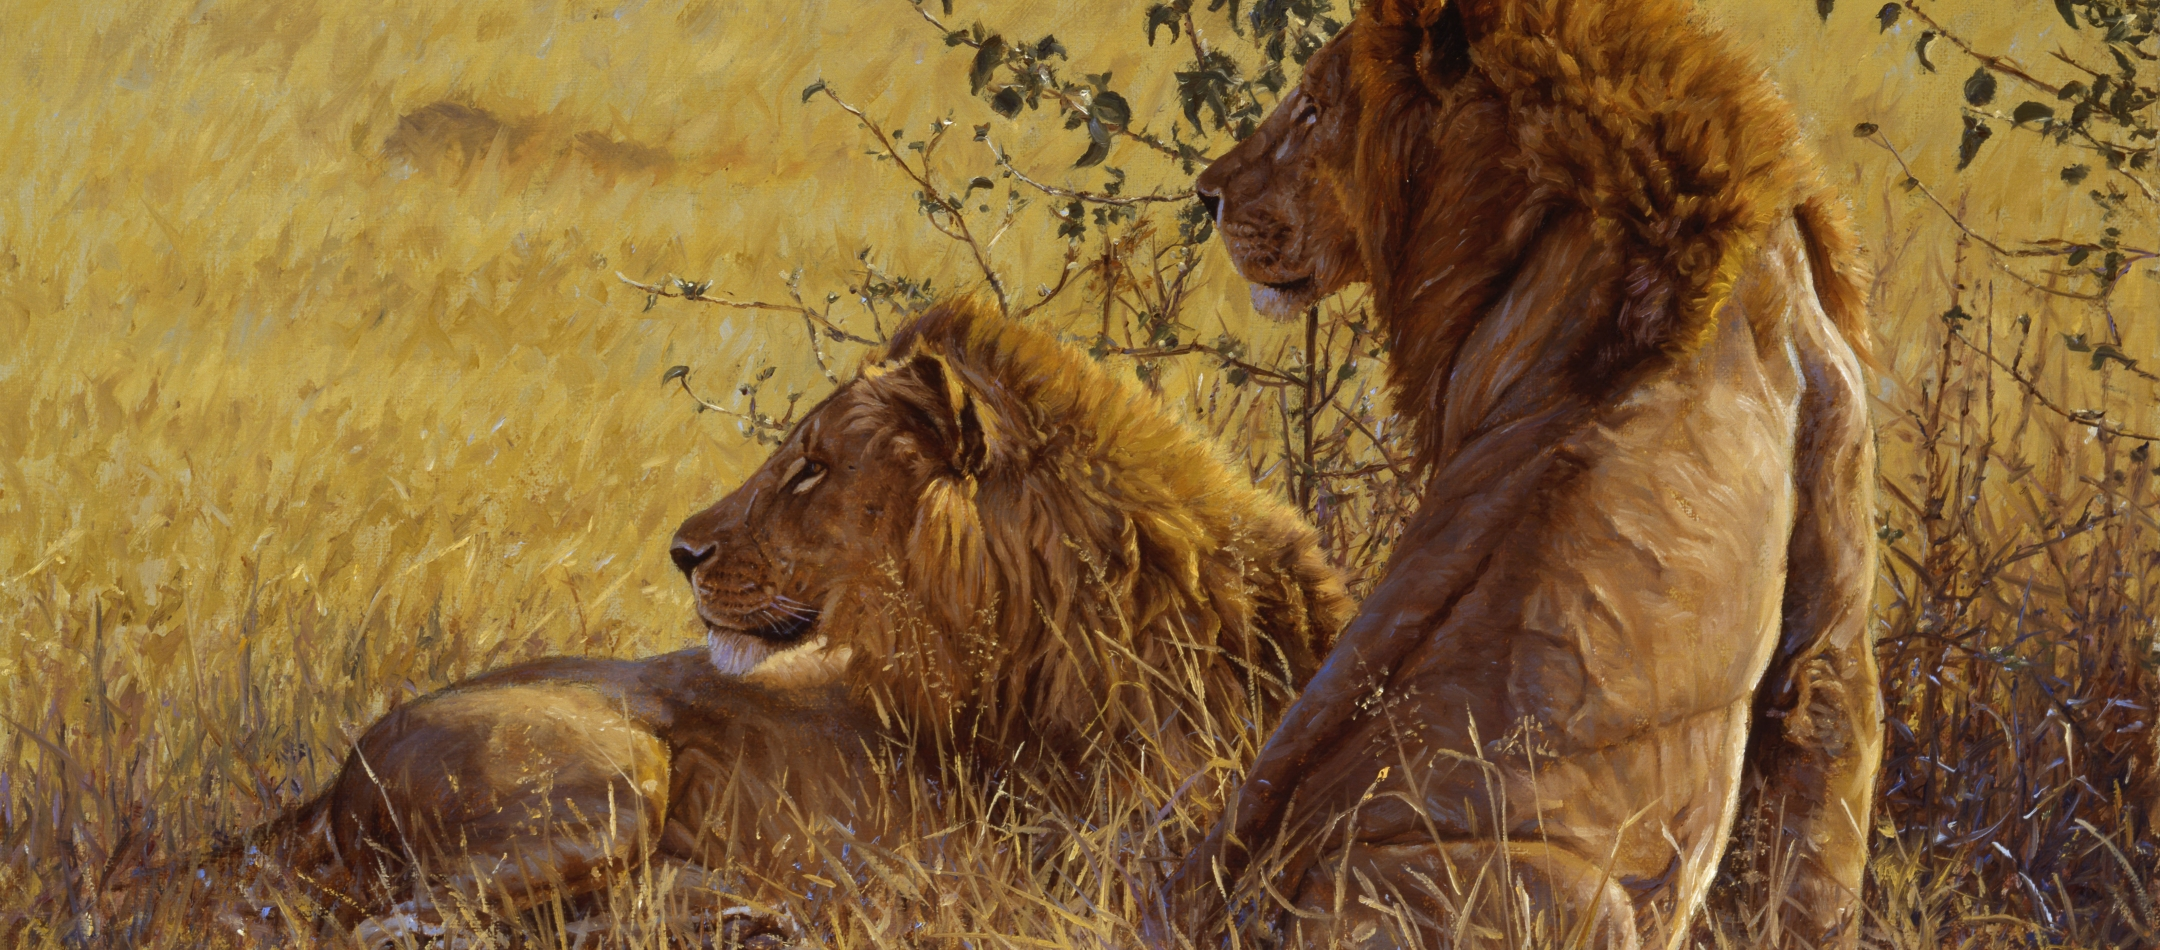 King of Beasts: A Study of the African Lion